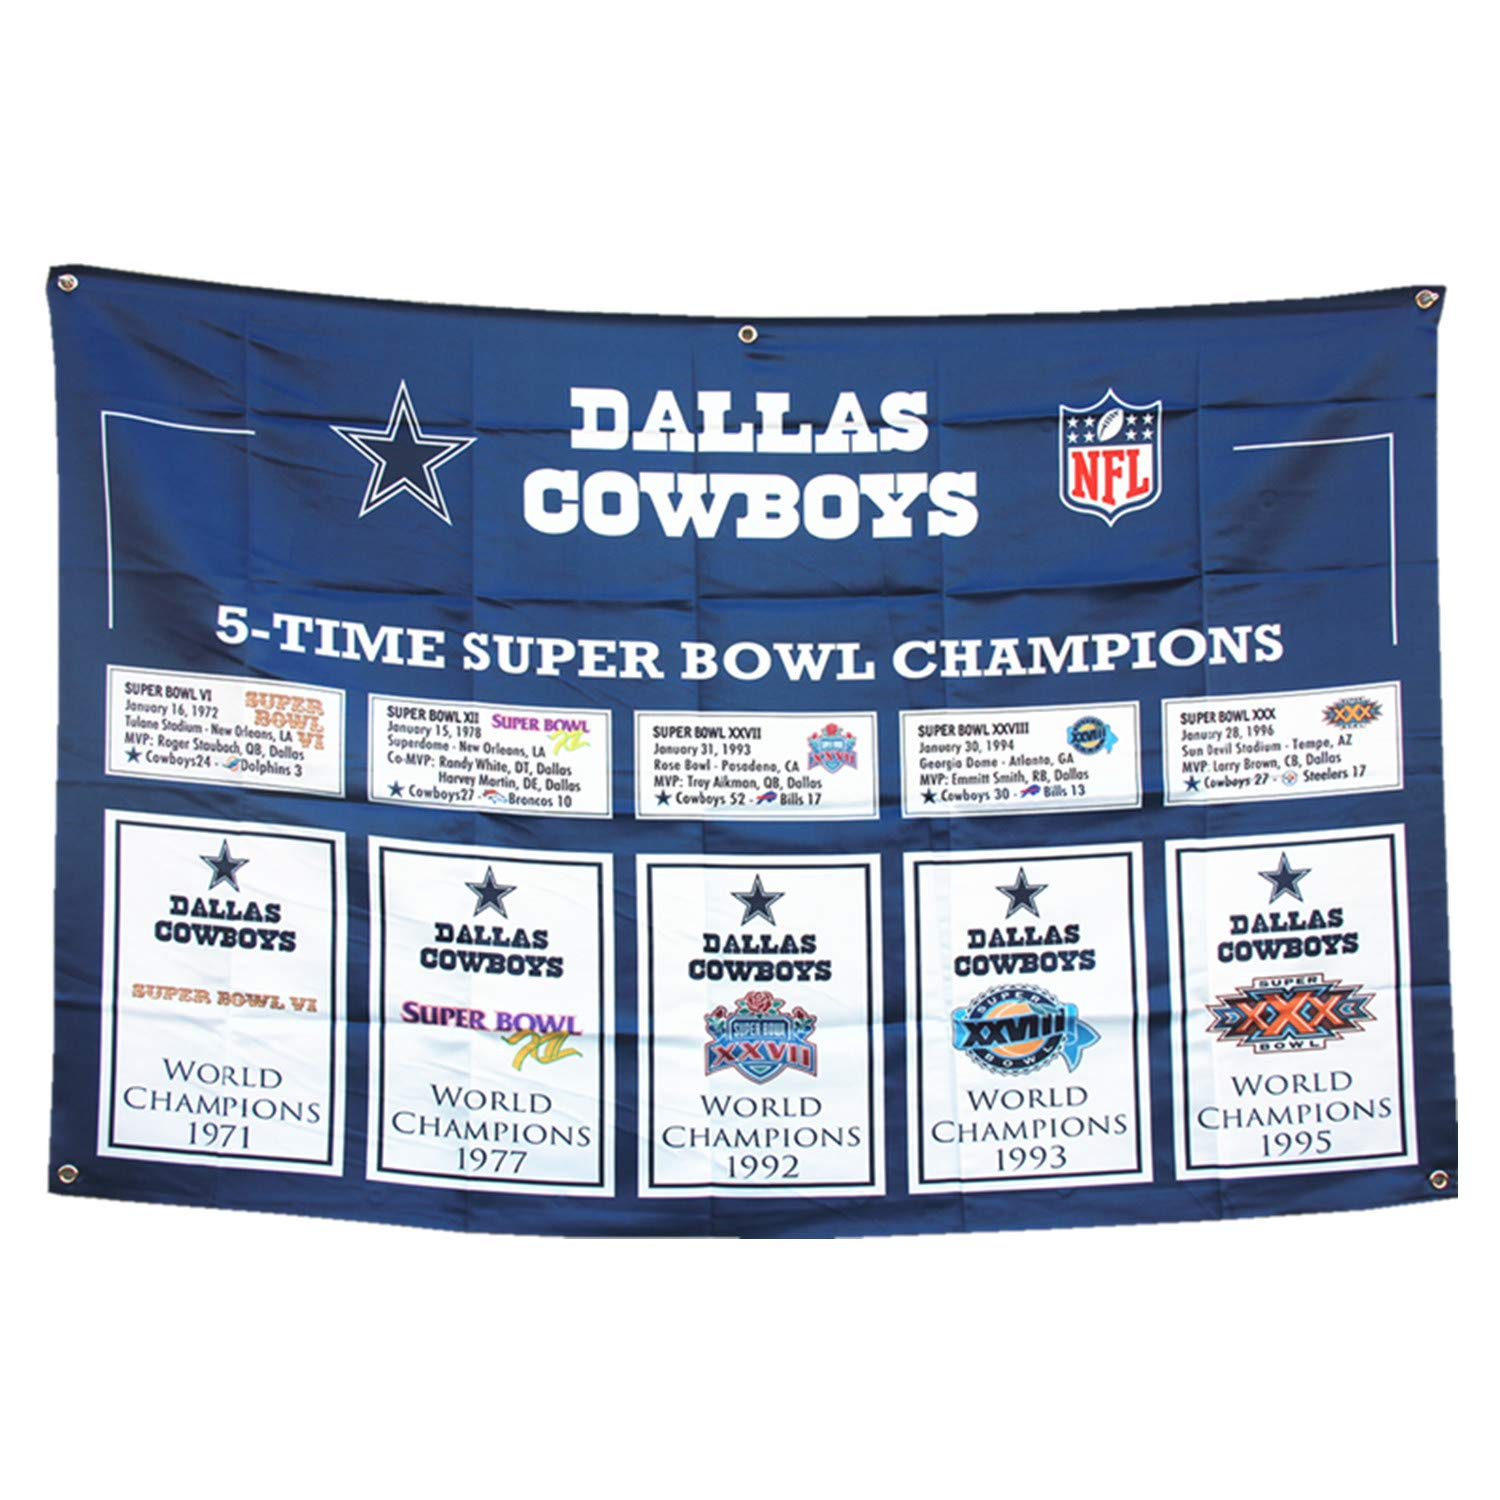 Dallas 5 in 1 'cowboys' Champions Flag 3x5 House Outdoor/Indoor Garden Flags Banner Gifts for Men Youth Mens Kids Women